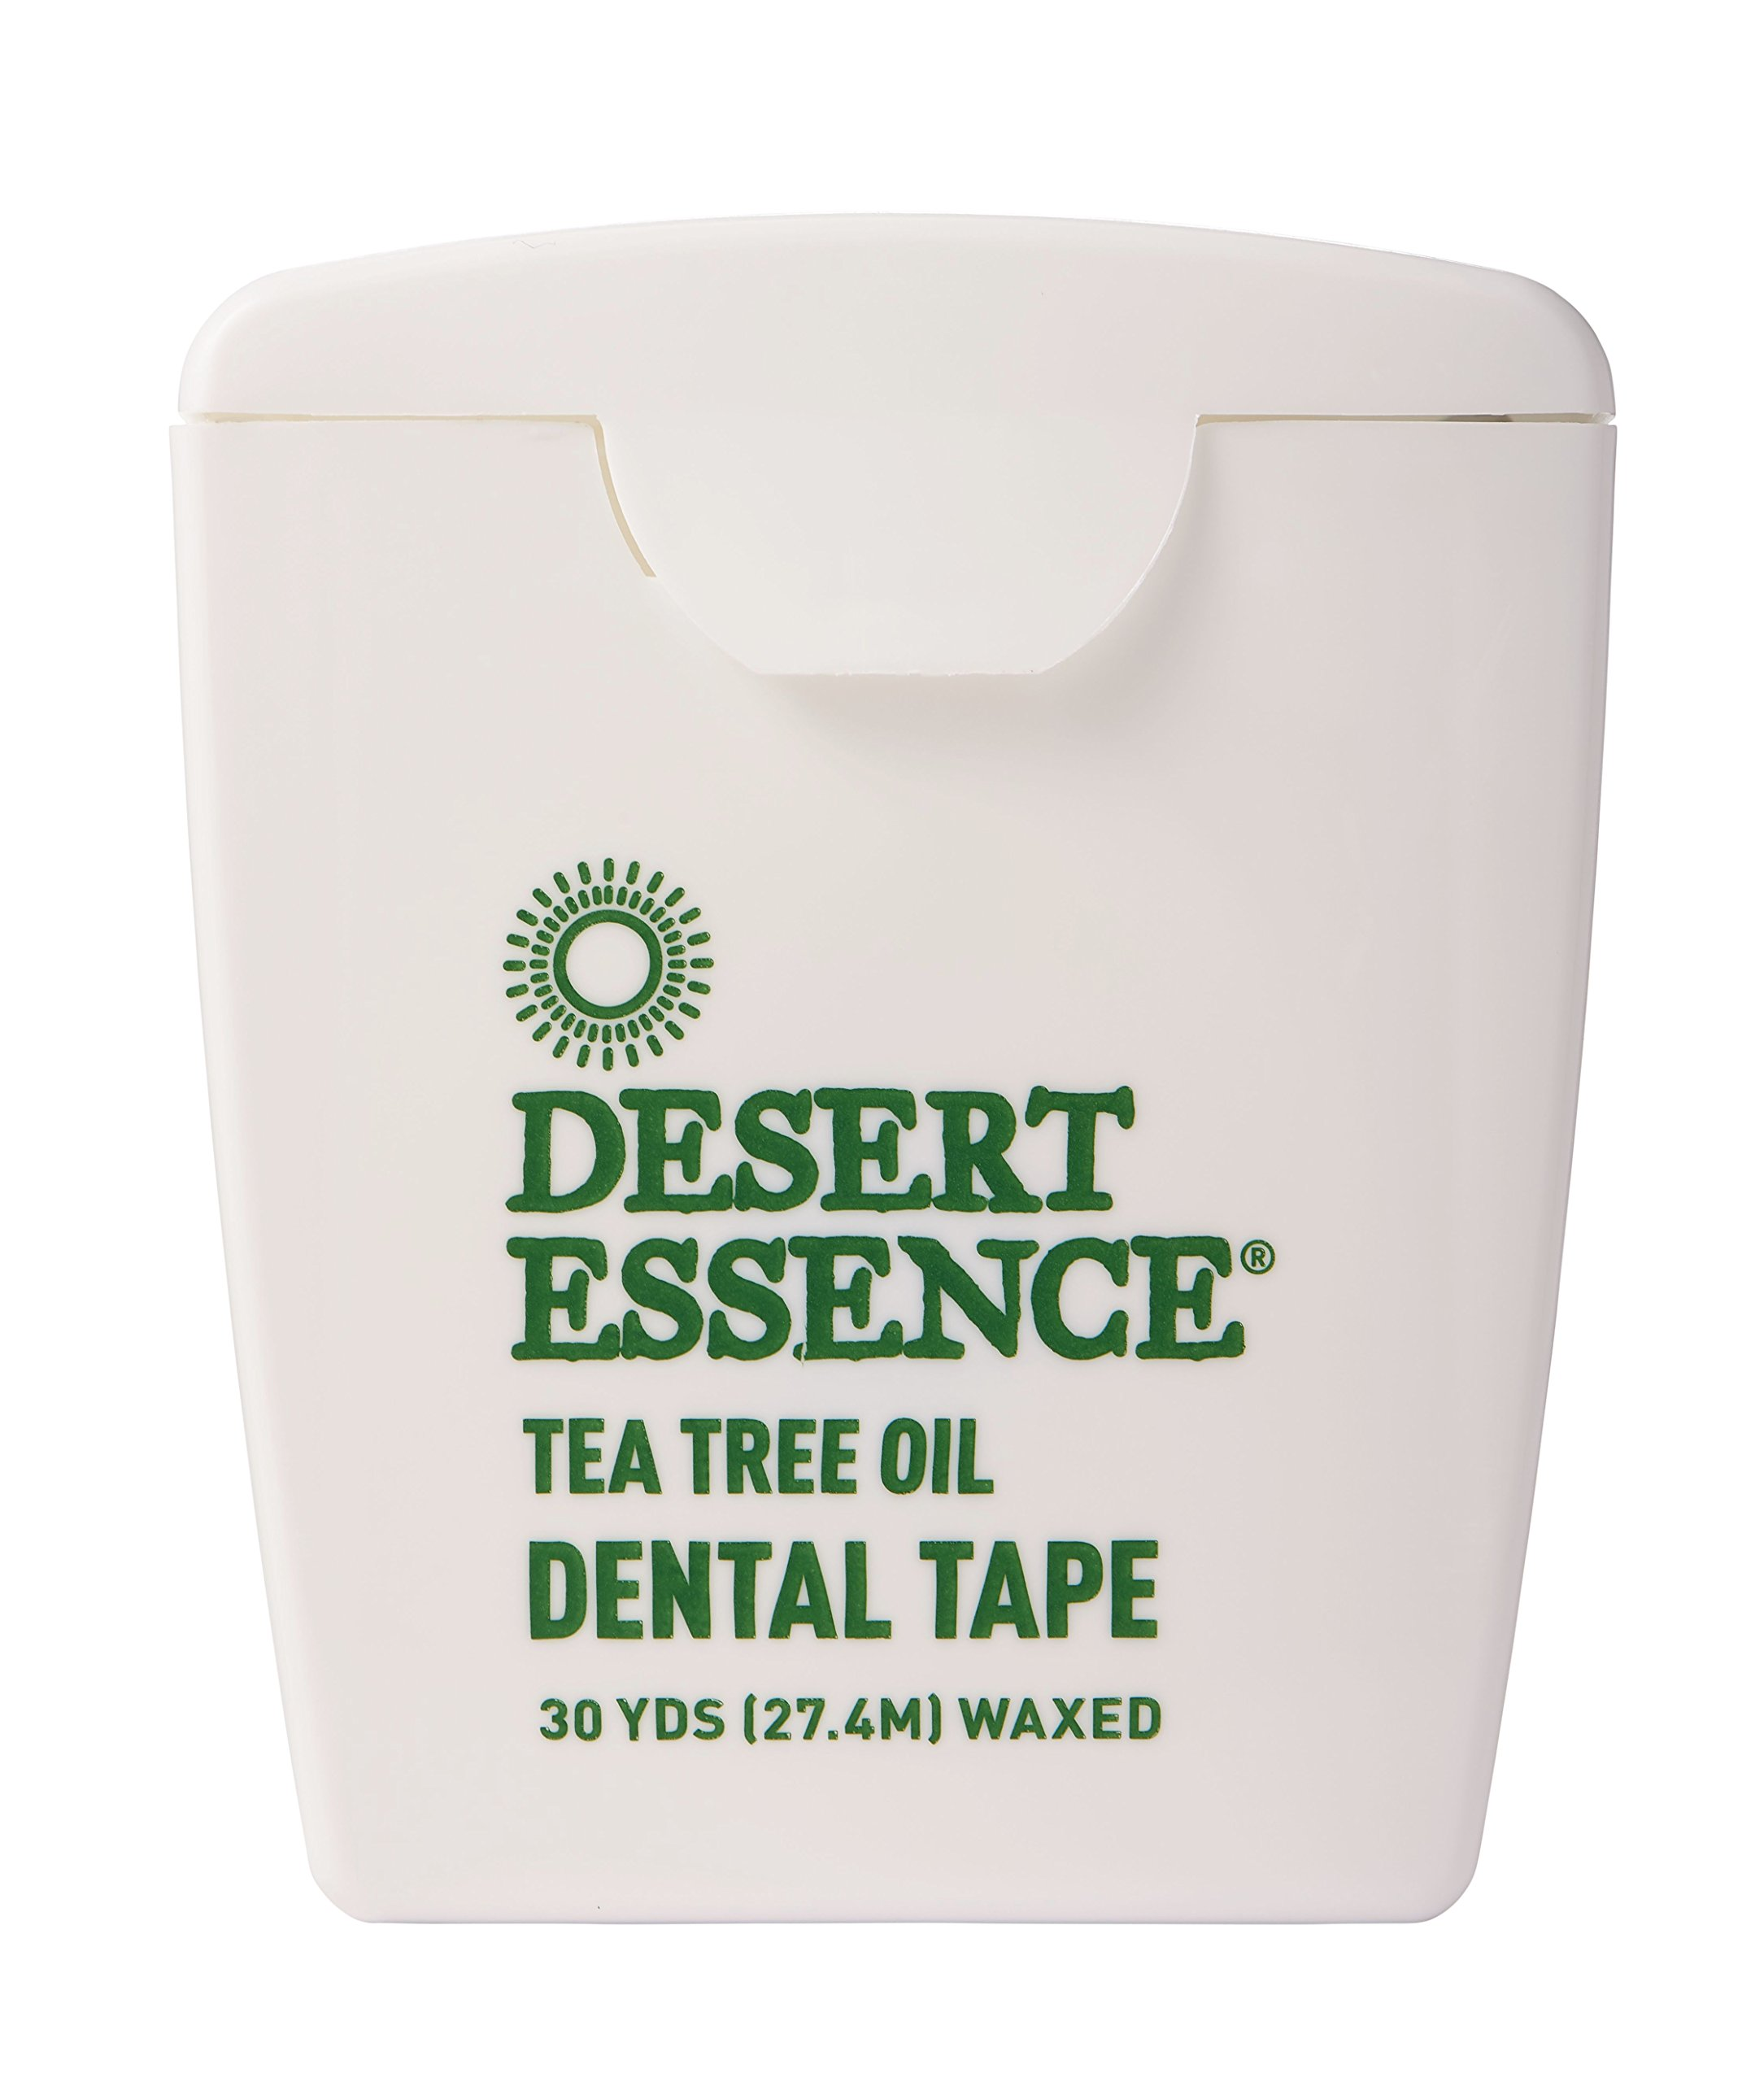 Desert Essence Tea Tree Dental Tape(12pk) - 30 yds